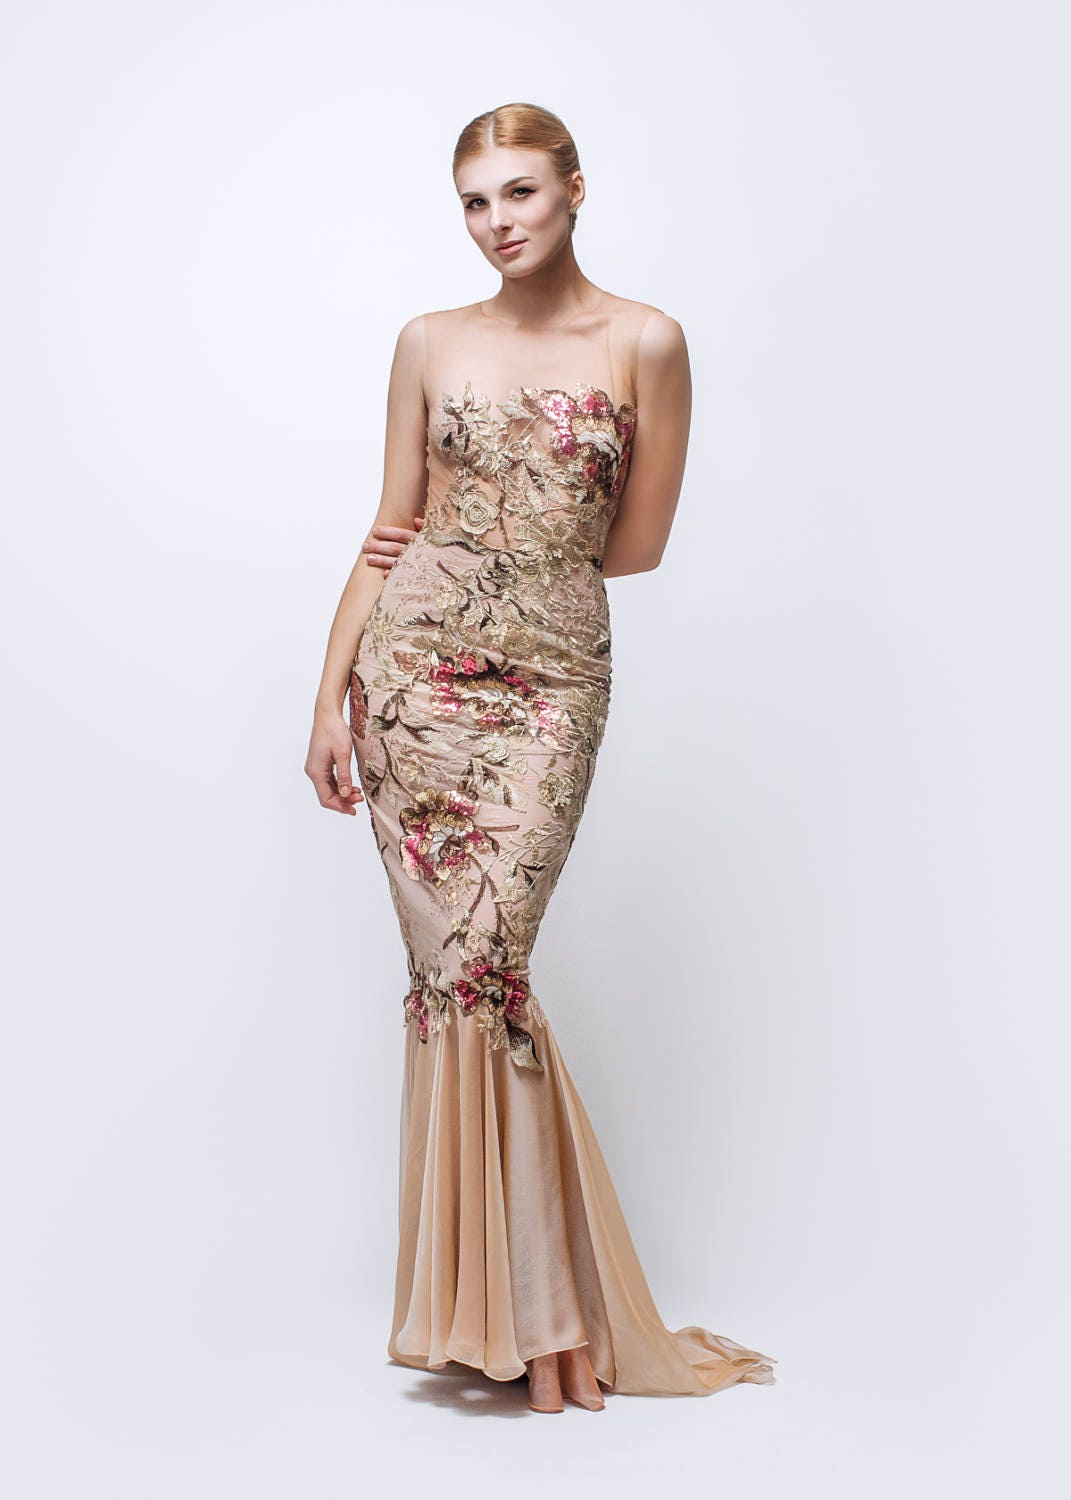 Blush evening dress couture dress formal gown   Etsy